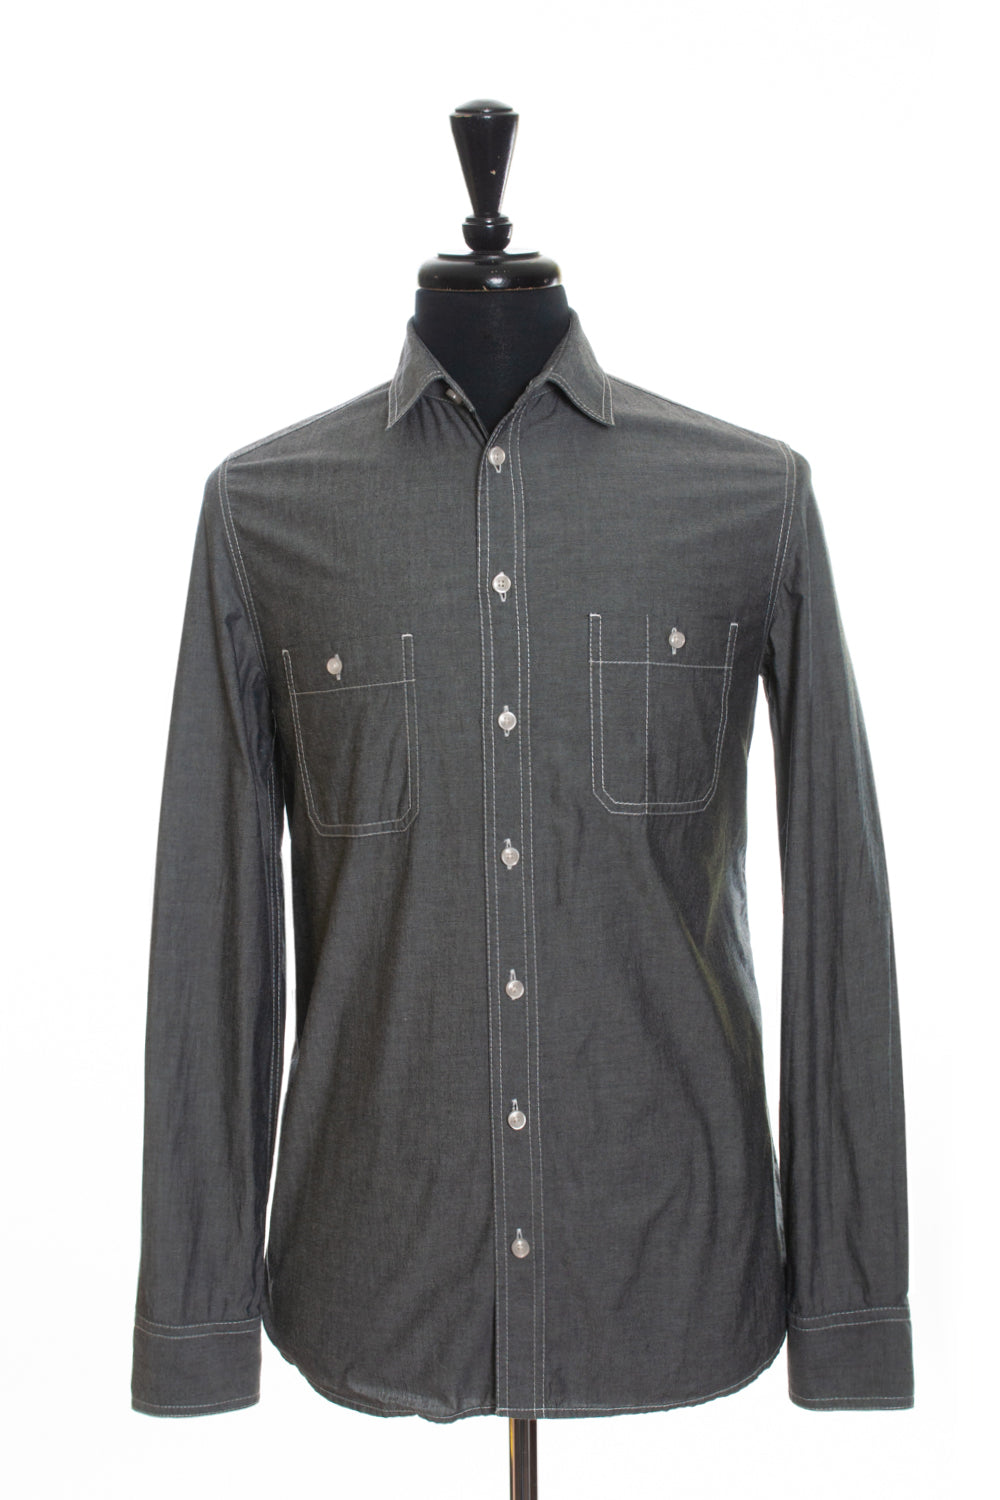 3.1 Philip Lim Grey Cotton Shirt for Luxmrkt.com Menswear Consignment Edmonton